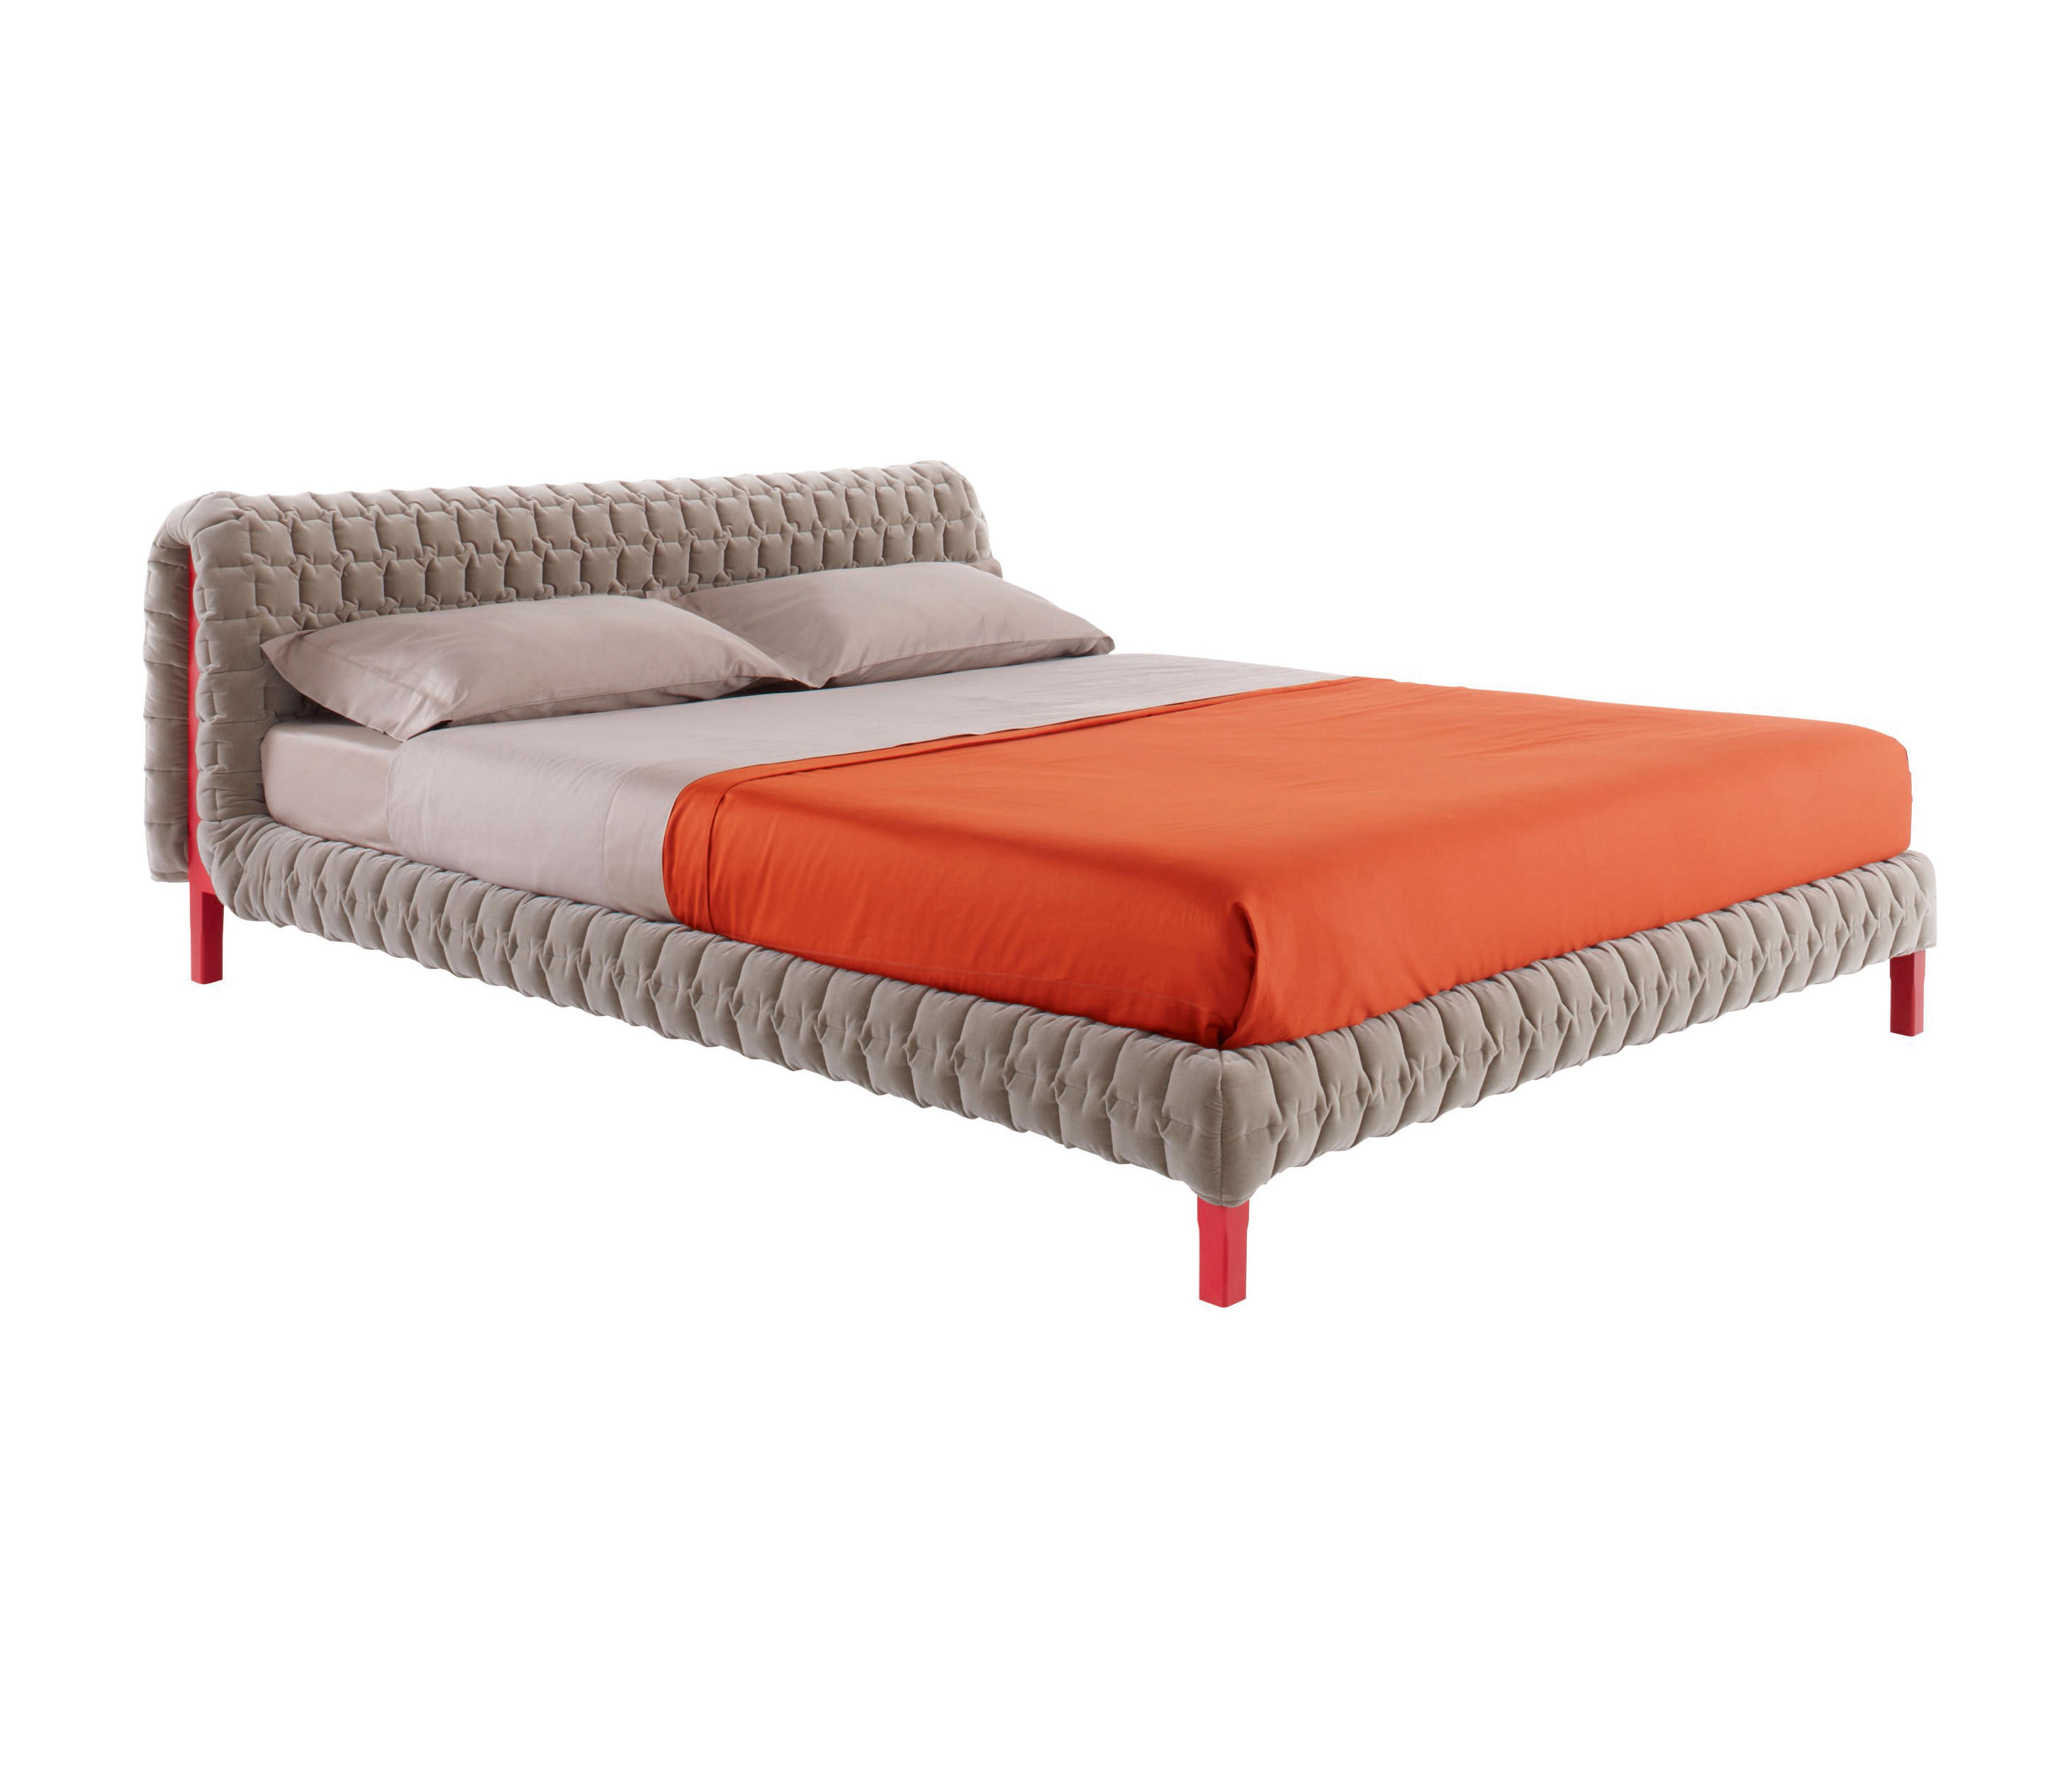 Bedombouw 140 Bij 200.Ruche Bed 140 X 200 Low Headboard Low Feet Beds From Ligne Roset